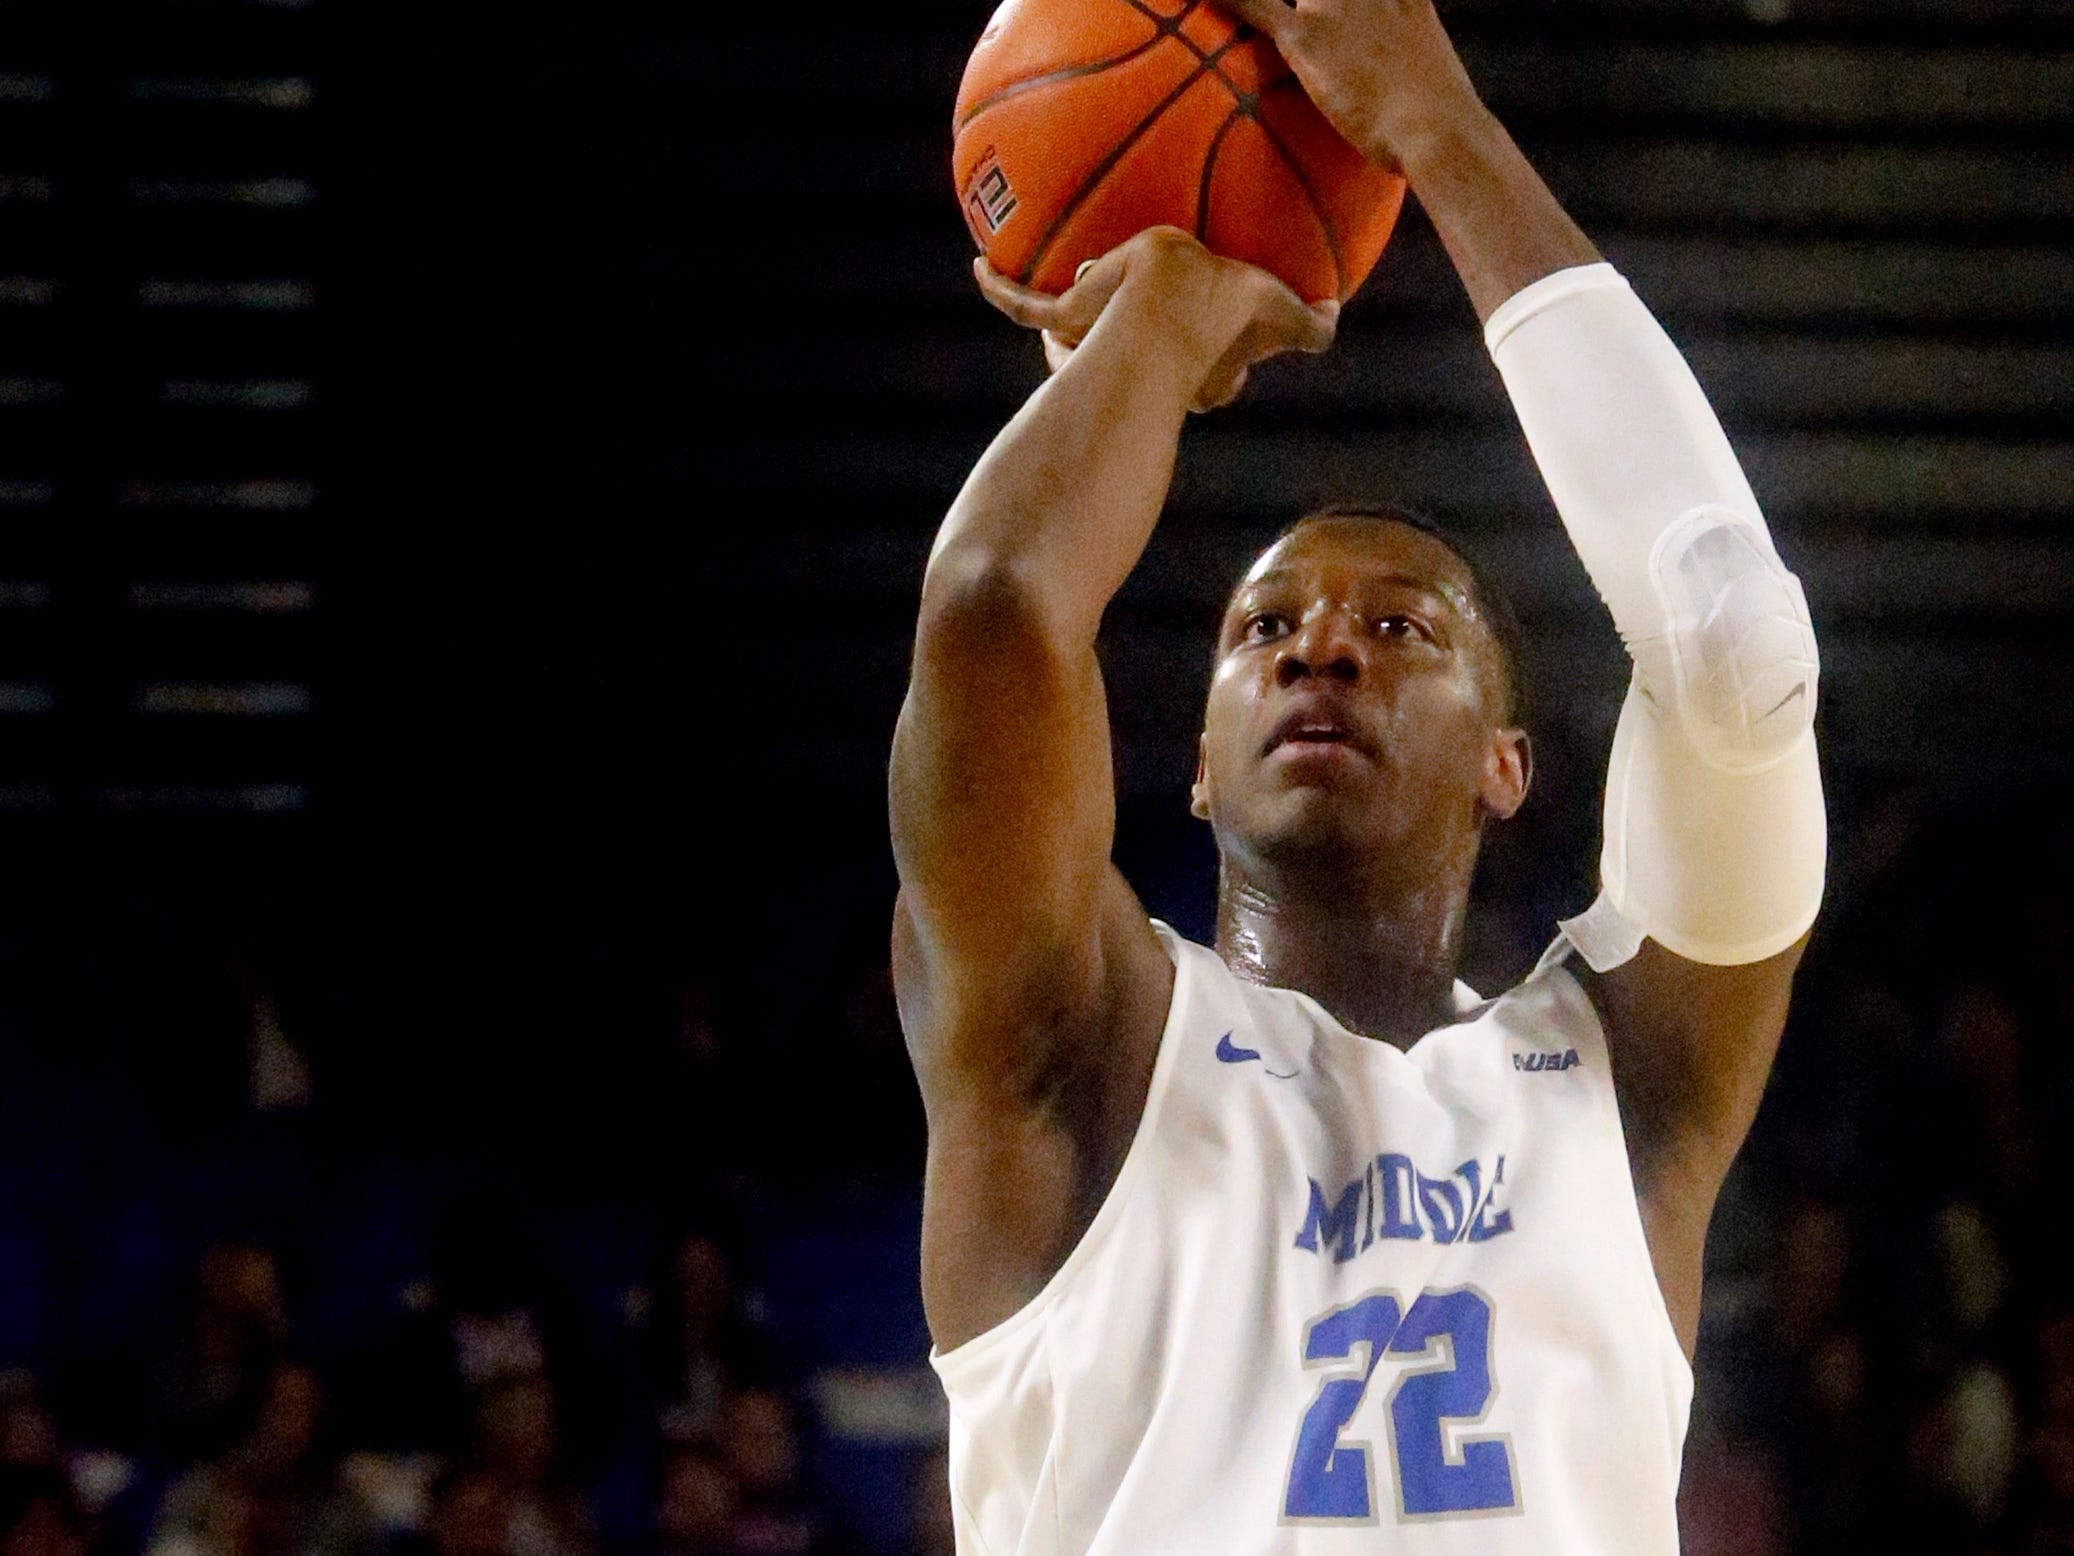 MTSU forward Reggie Scurry (22) shoots a three point basket during the game against UAB on Wednesday Jan. 30, 2019.